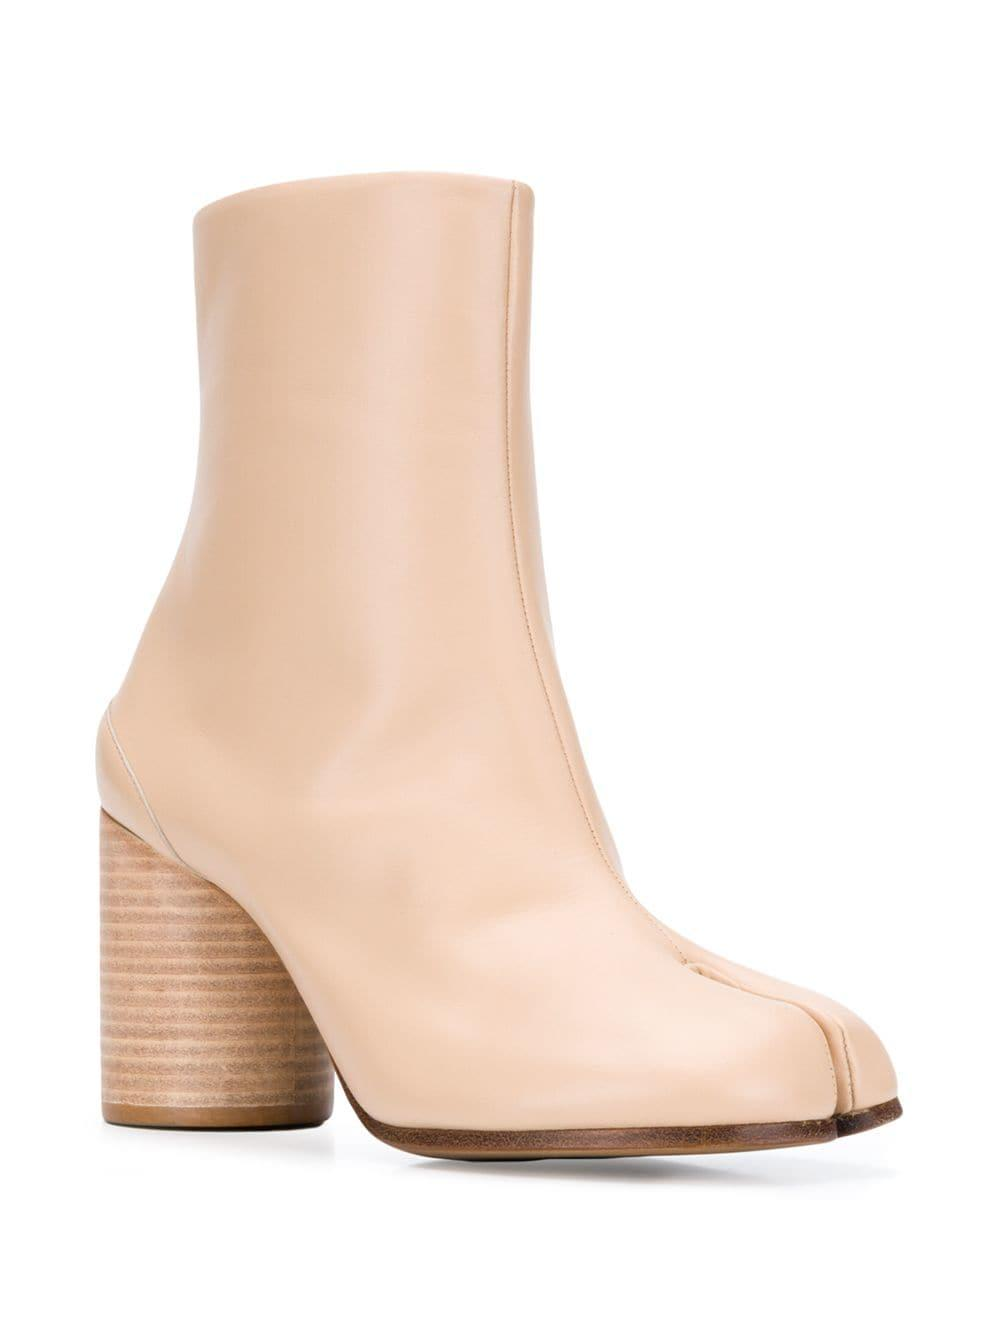 4d029c4278f Lyst - Maison Margiela Tabi Ankle Boots in Natural